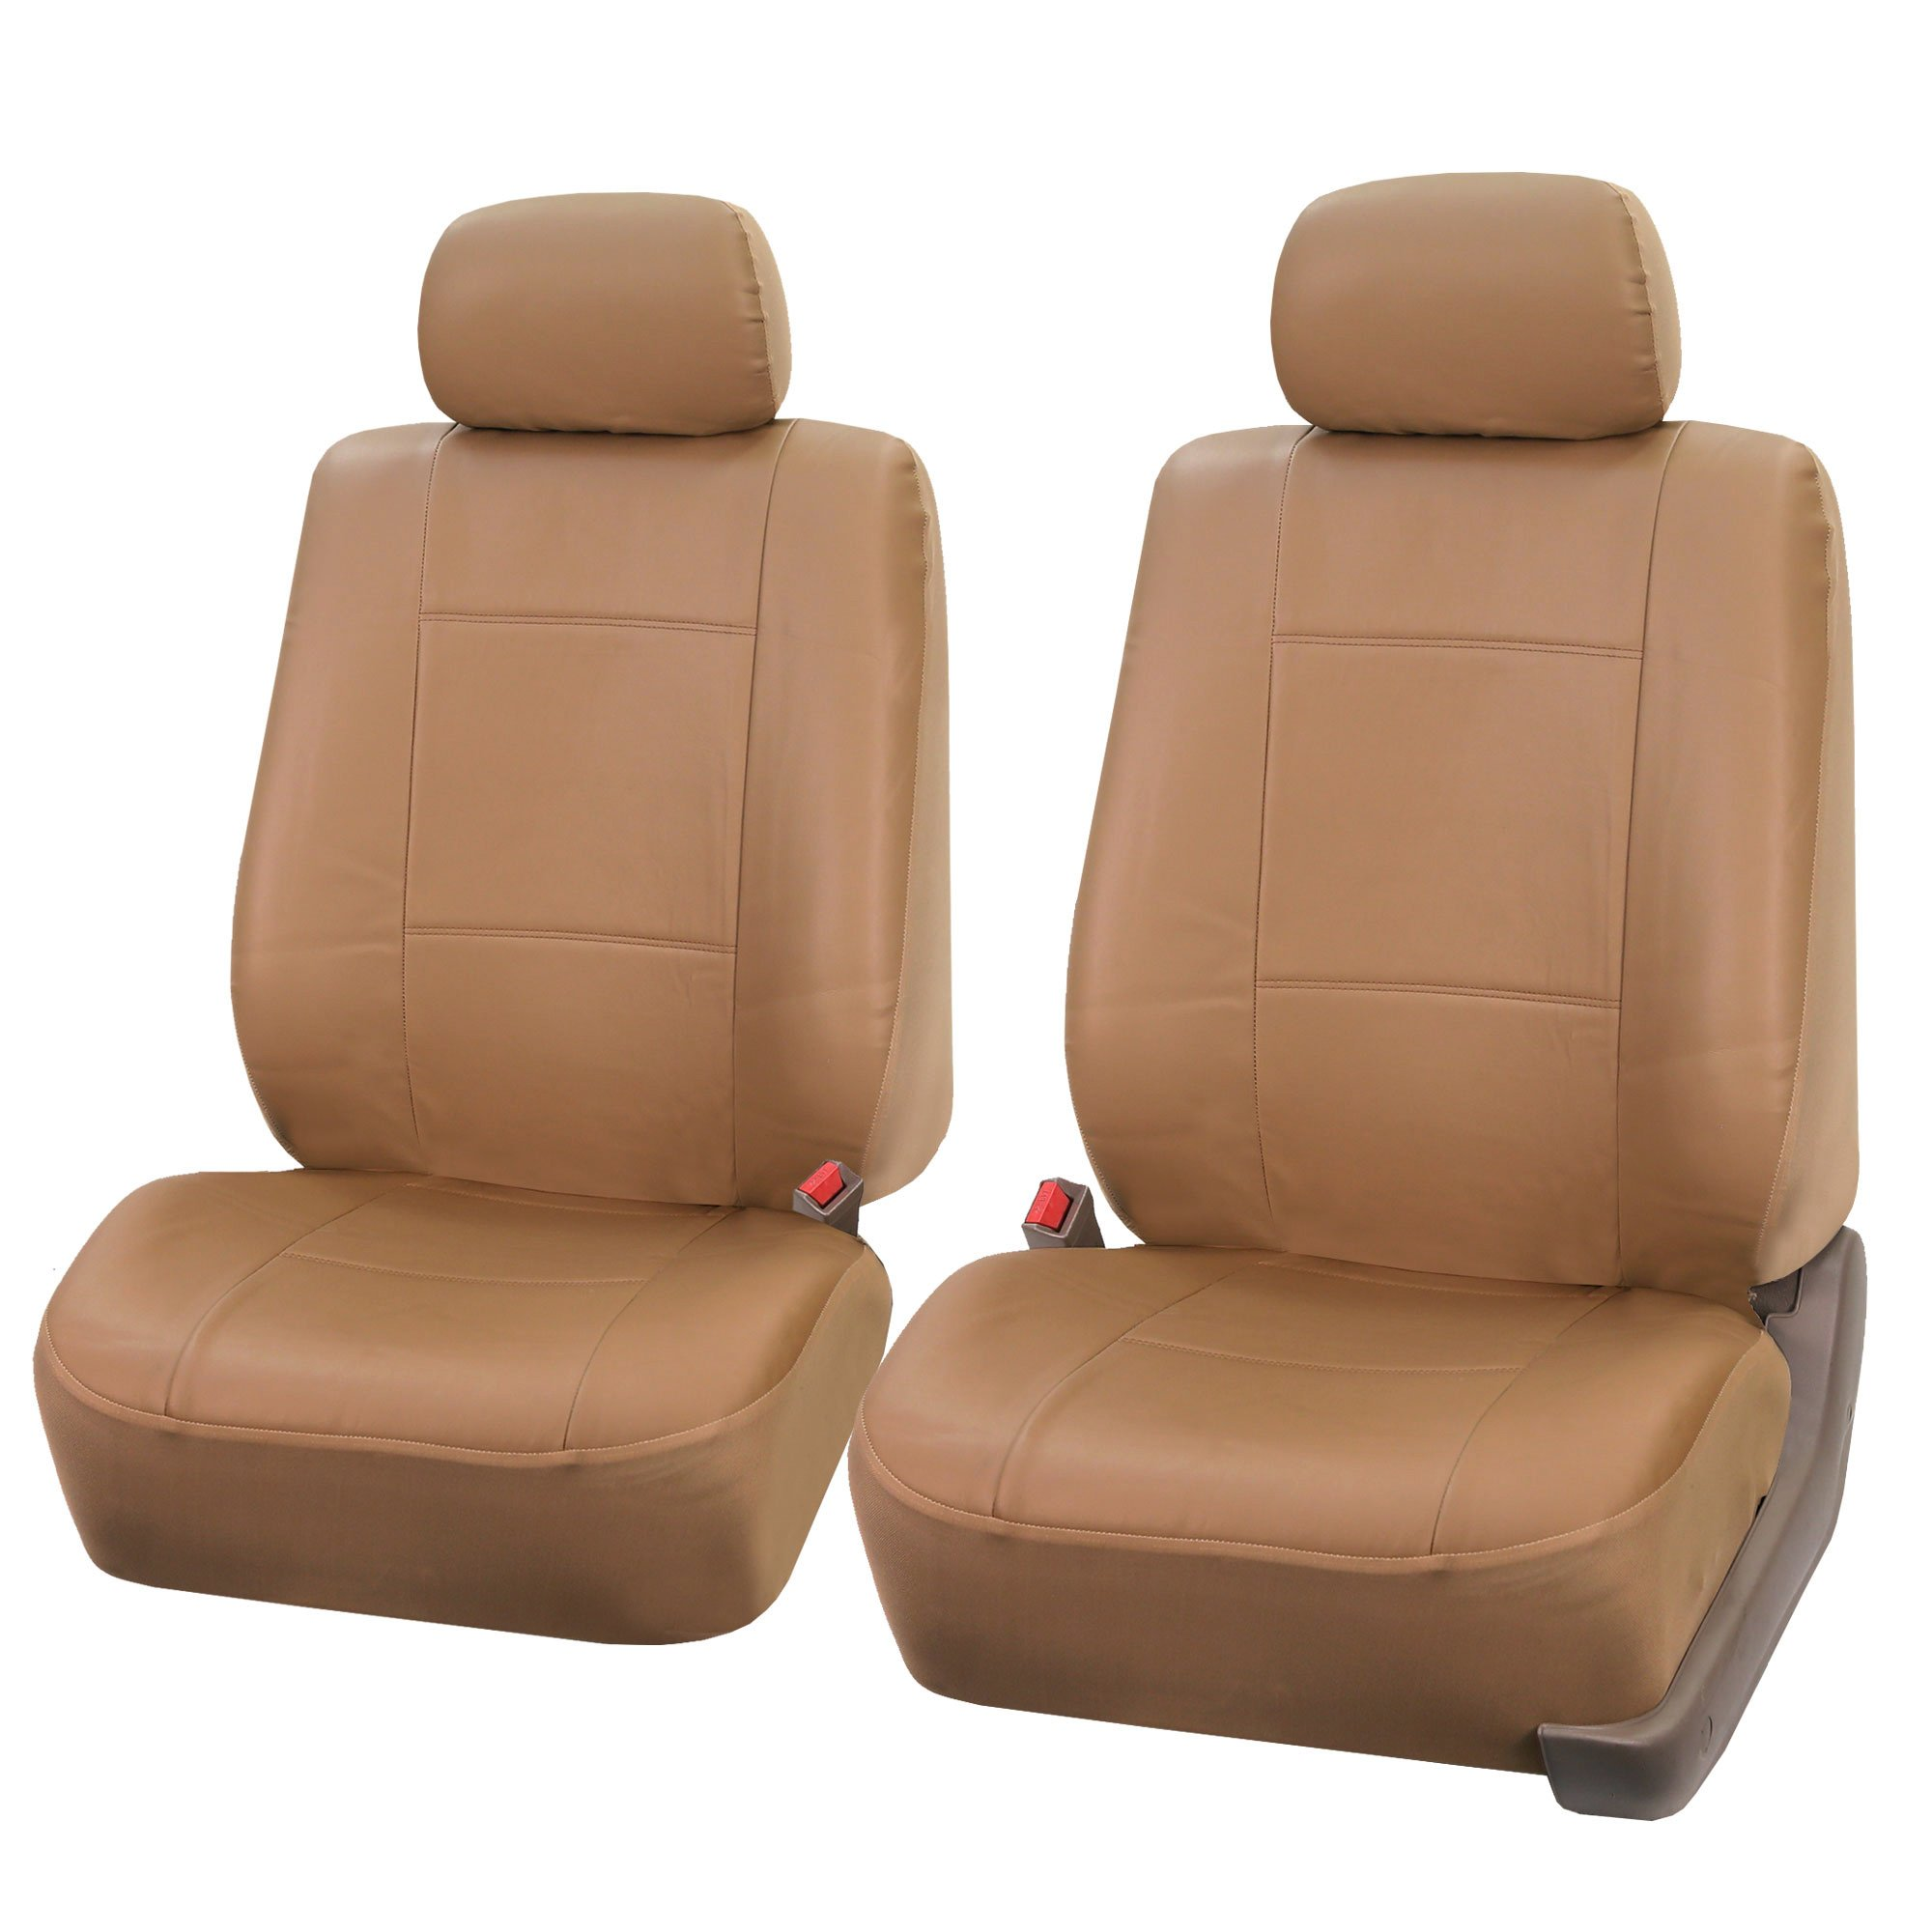 FH Group FH-PU001102 Classic Synthetic Leather Pair Set Car Seat Covers, Beige Color - Fit Most Car, Truck, SUV, or Van by FH Group